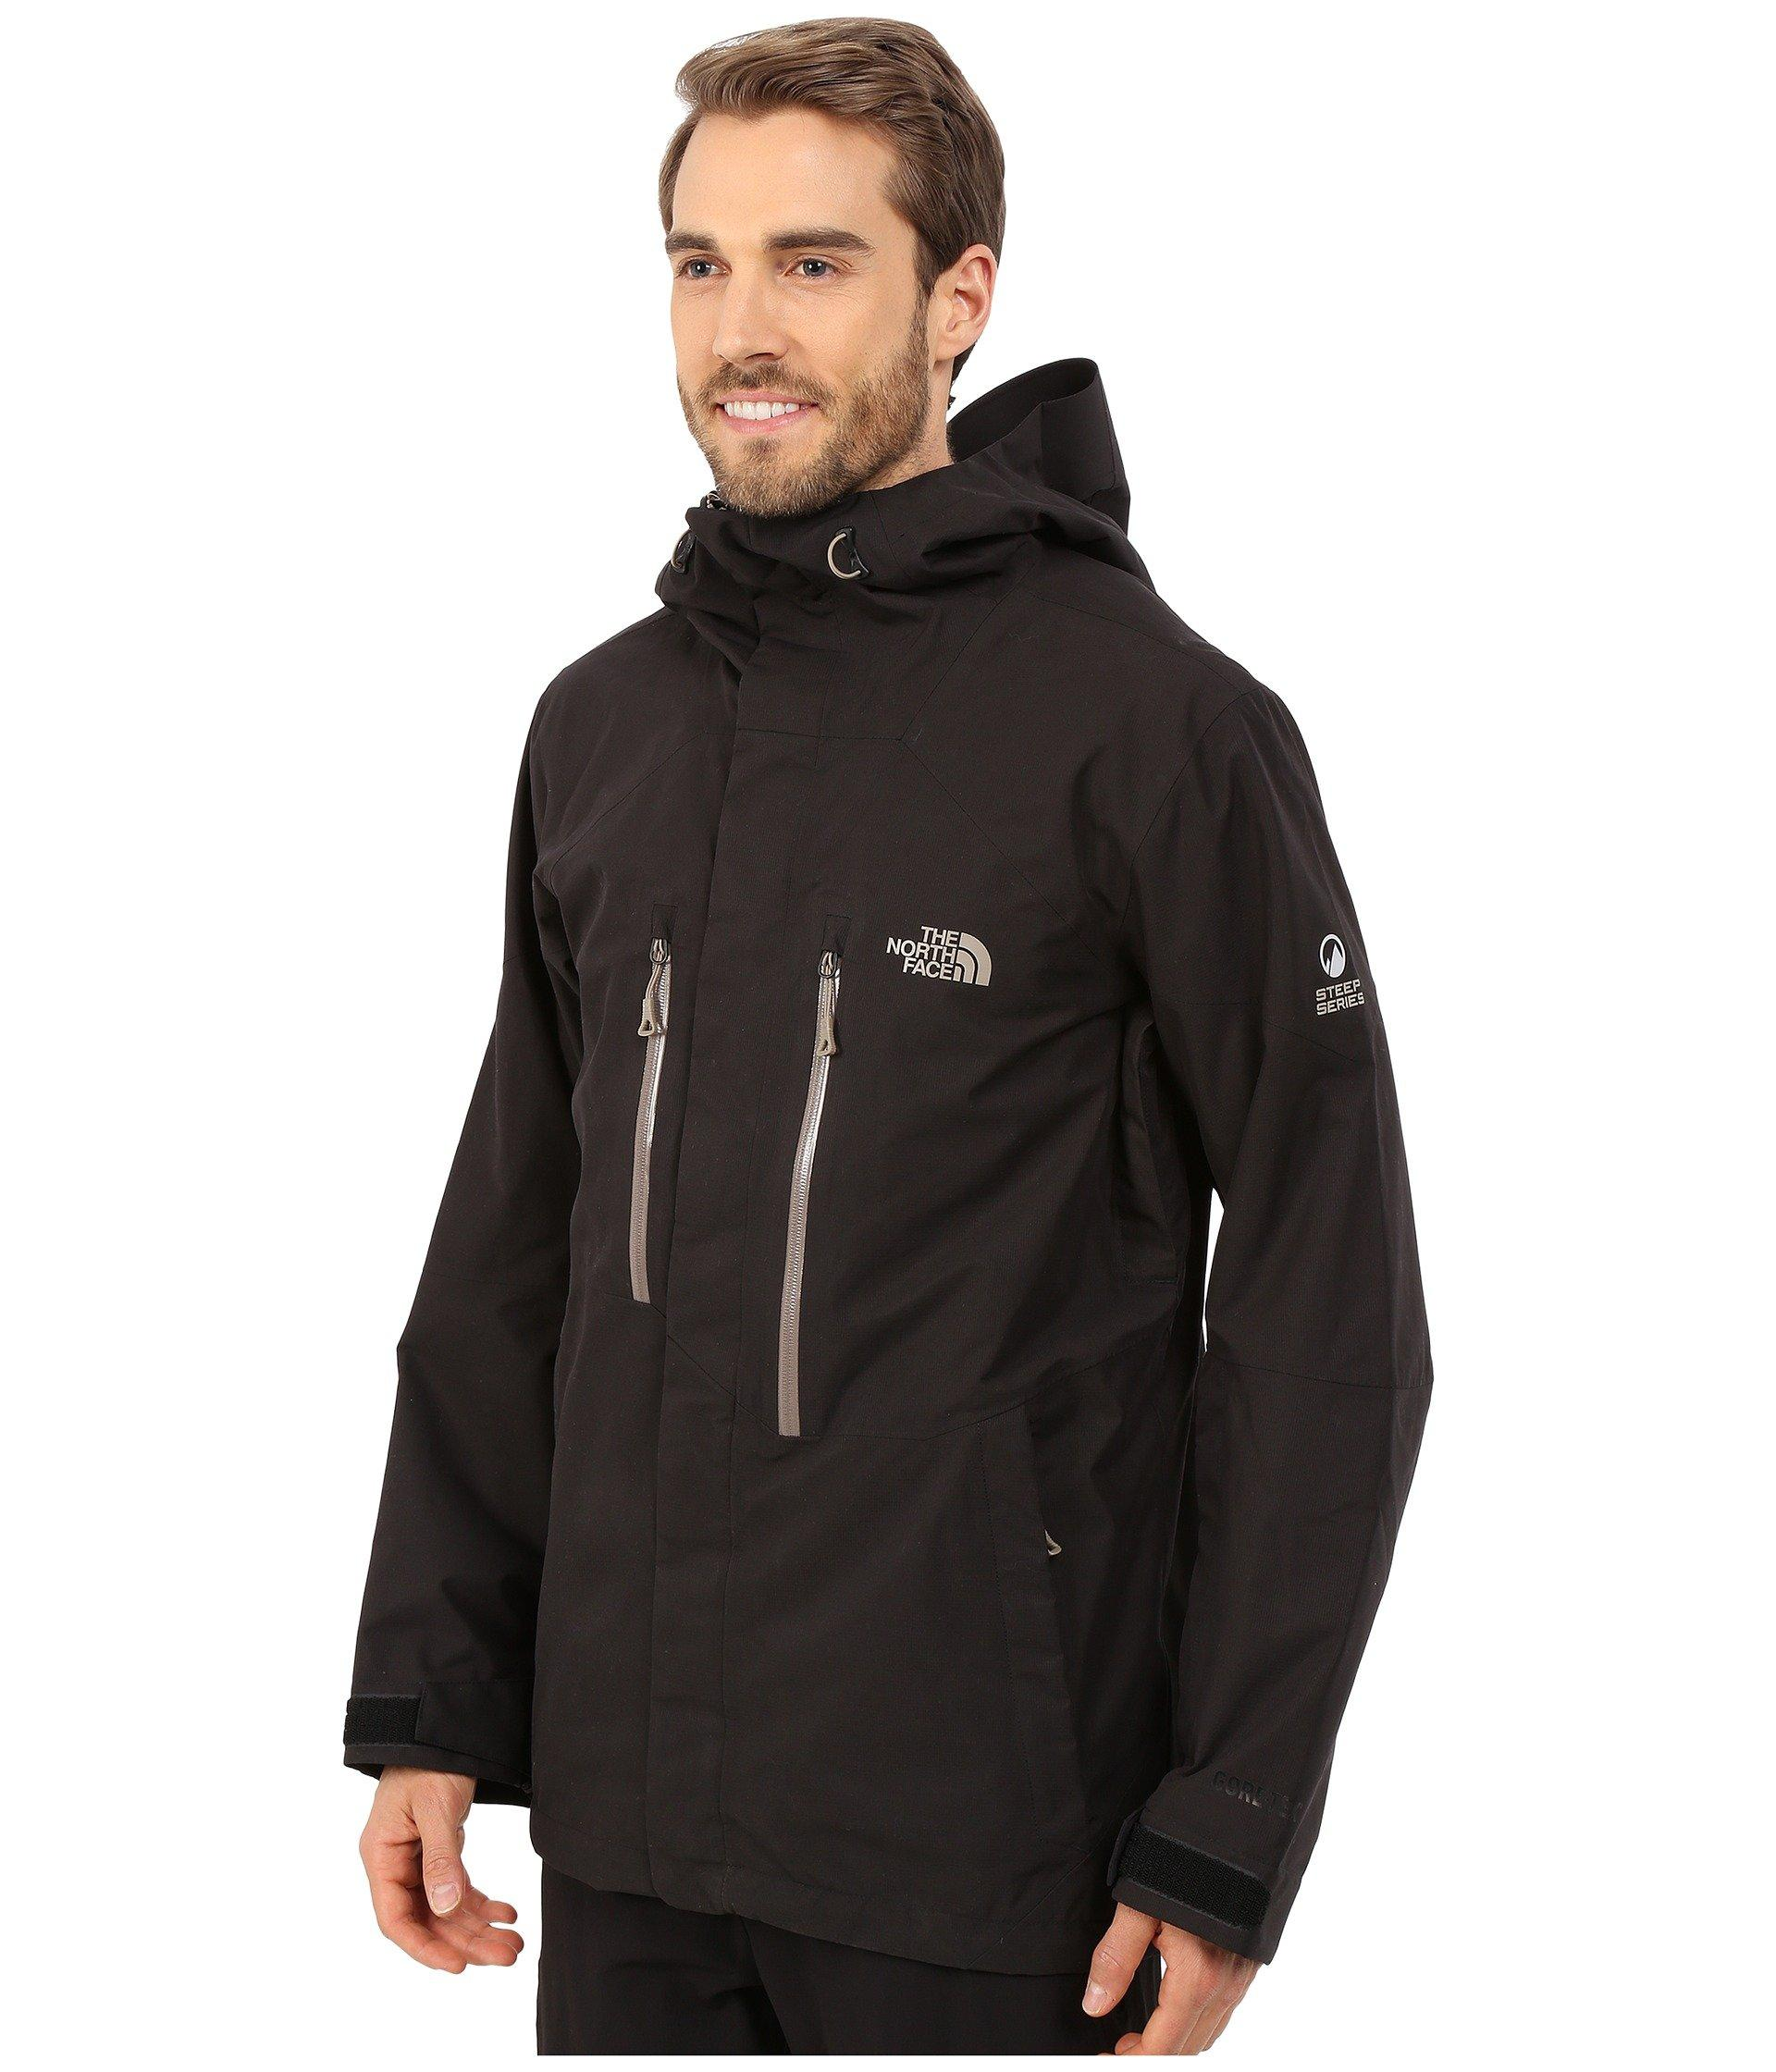 429086849e8f Lyst - The North Face Nfz Jacket in Black for Men